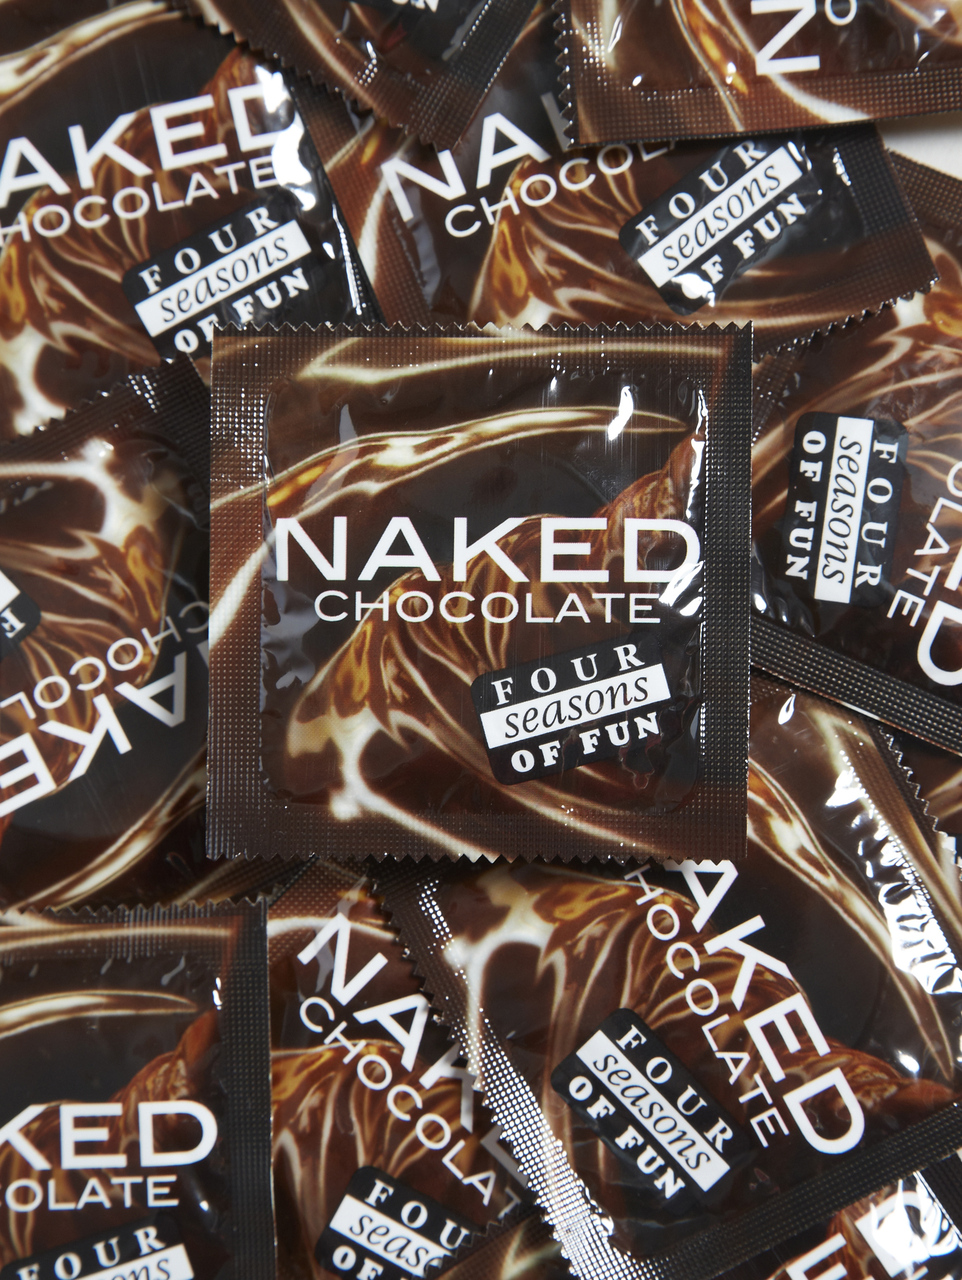 Four Seasons Naked Chocolate Condoms (24 loose packed)  - Buy Condoms Online